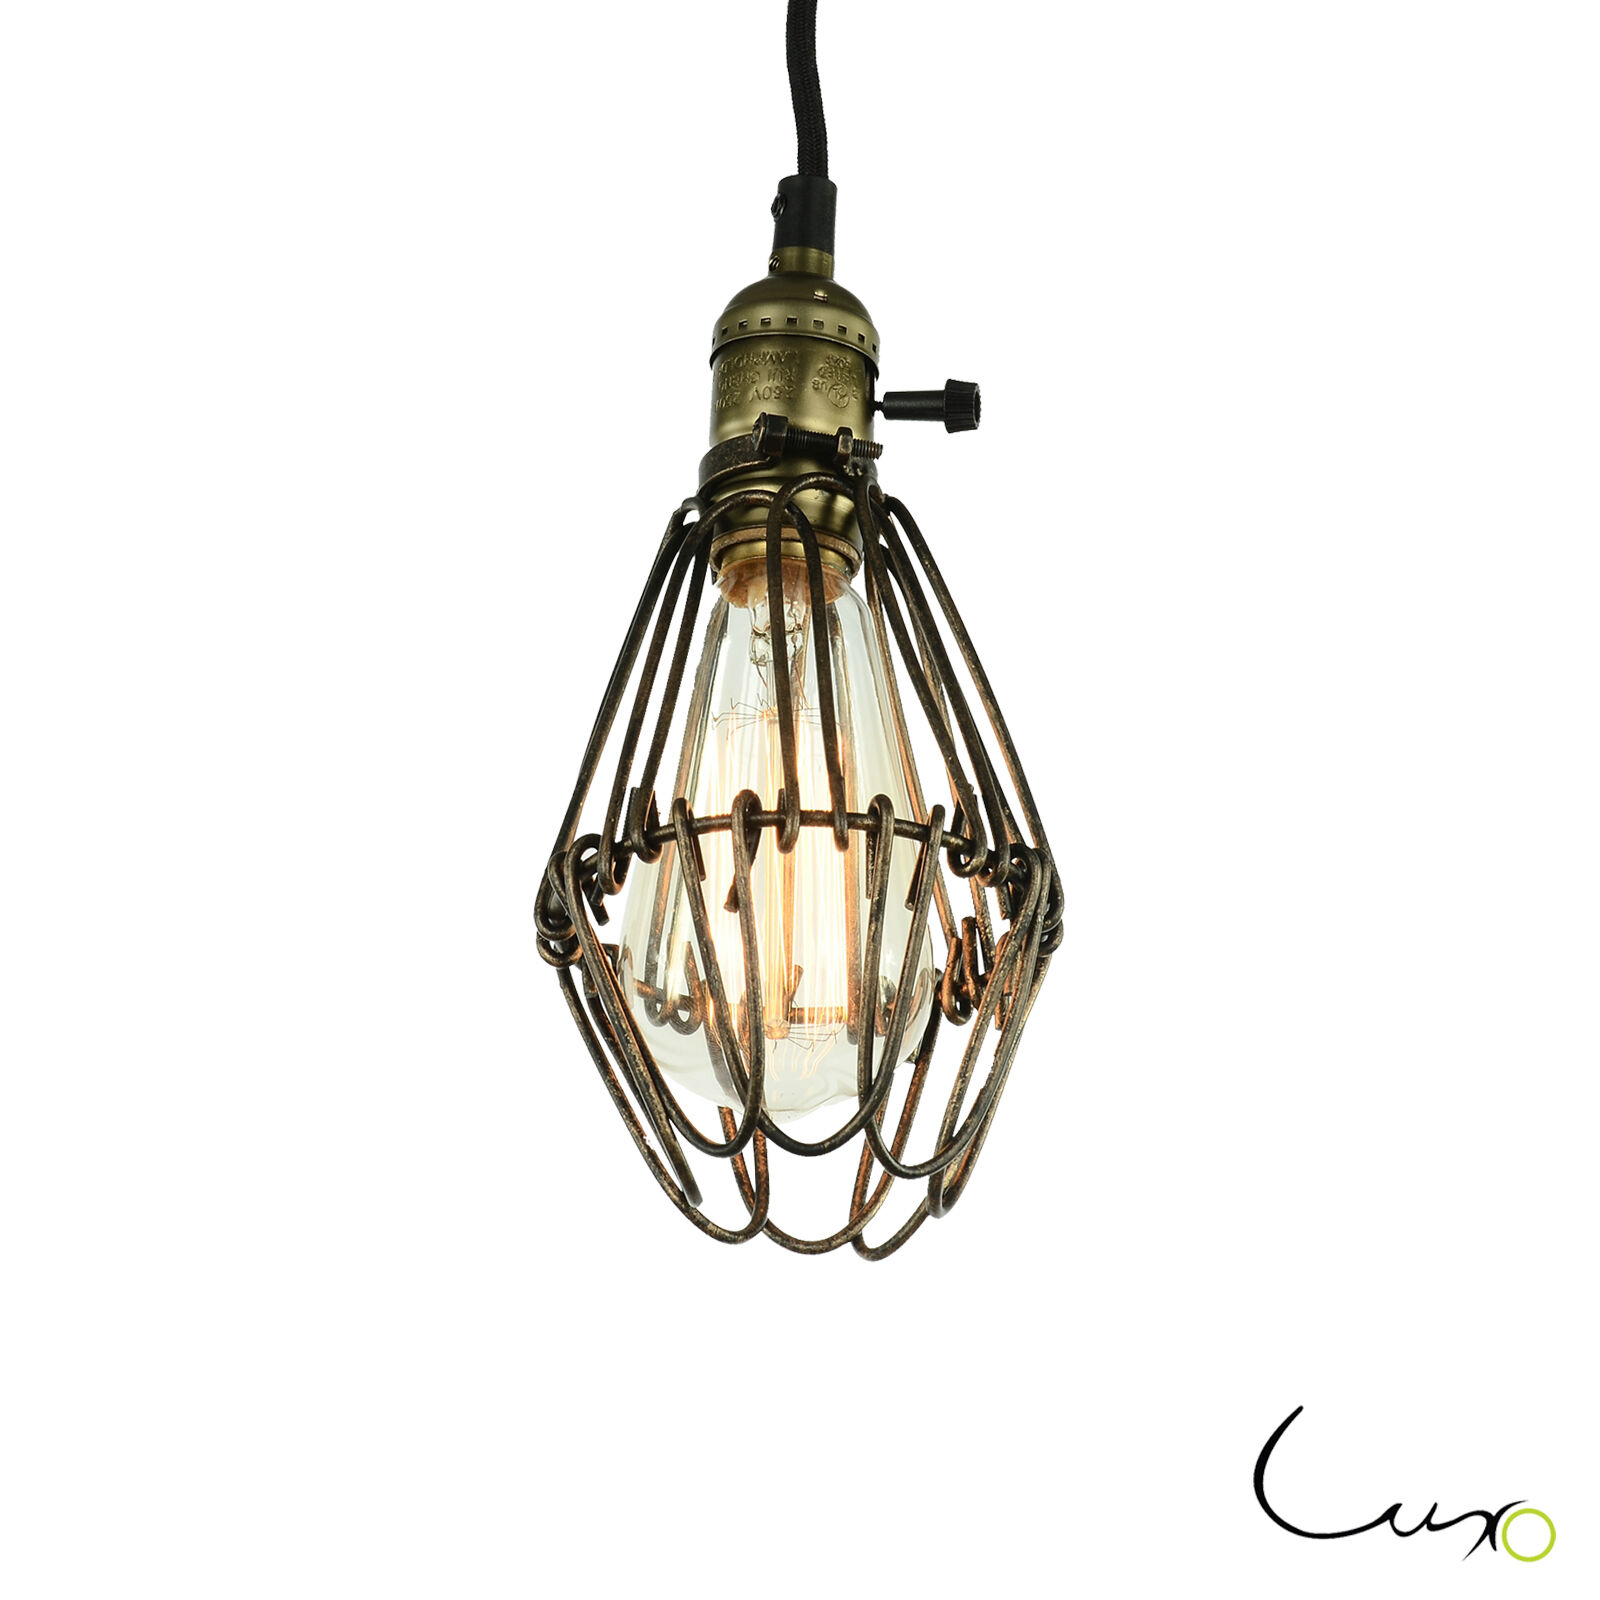 vintage industrial cage hanging pendant light fitting